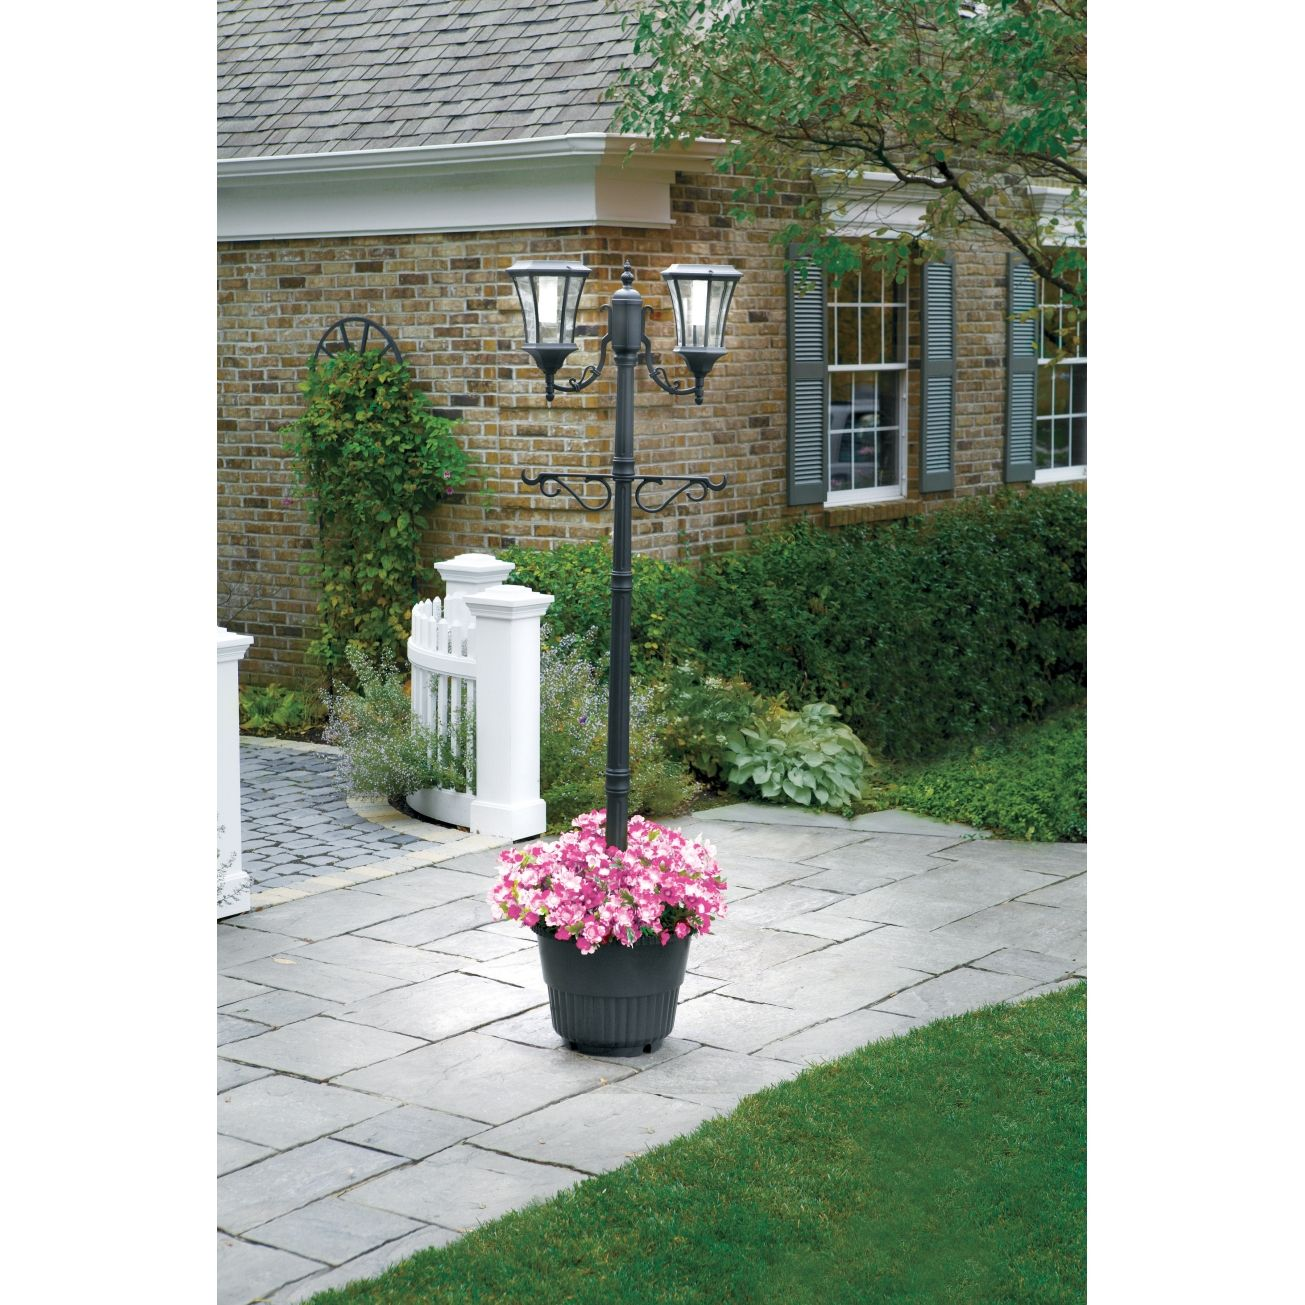 Sunergy Solar Lamp Post With Planter Base 50400356 Outdoor